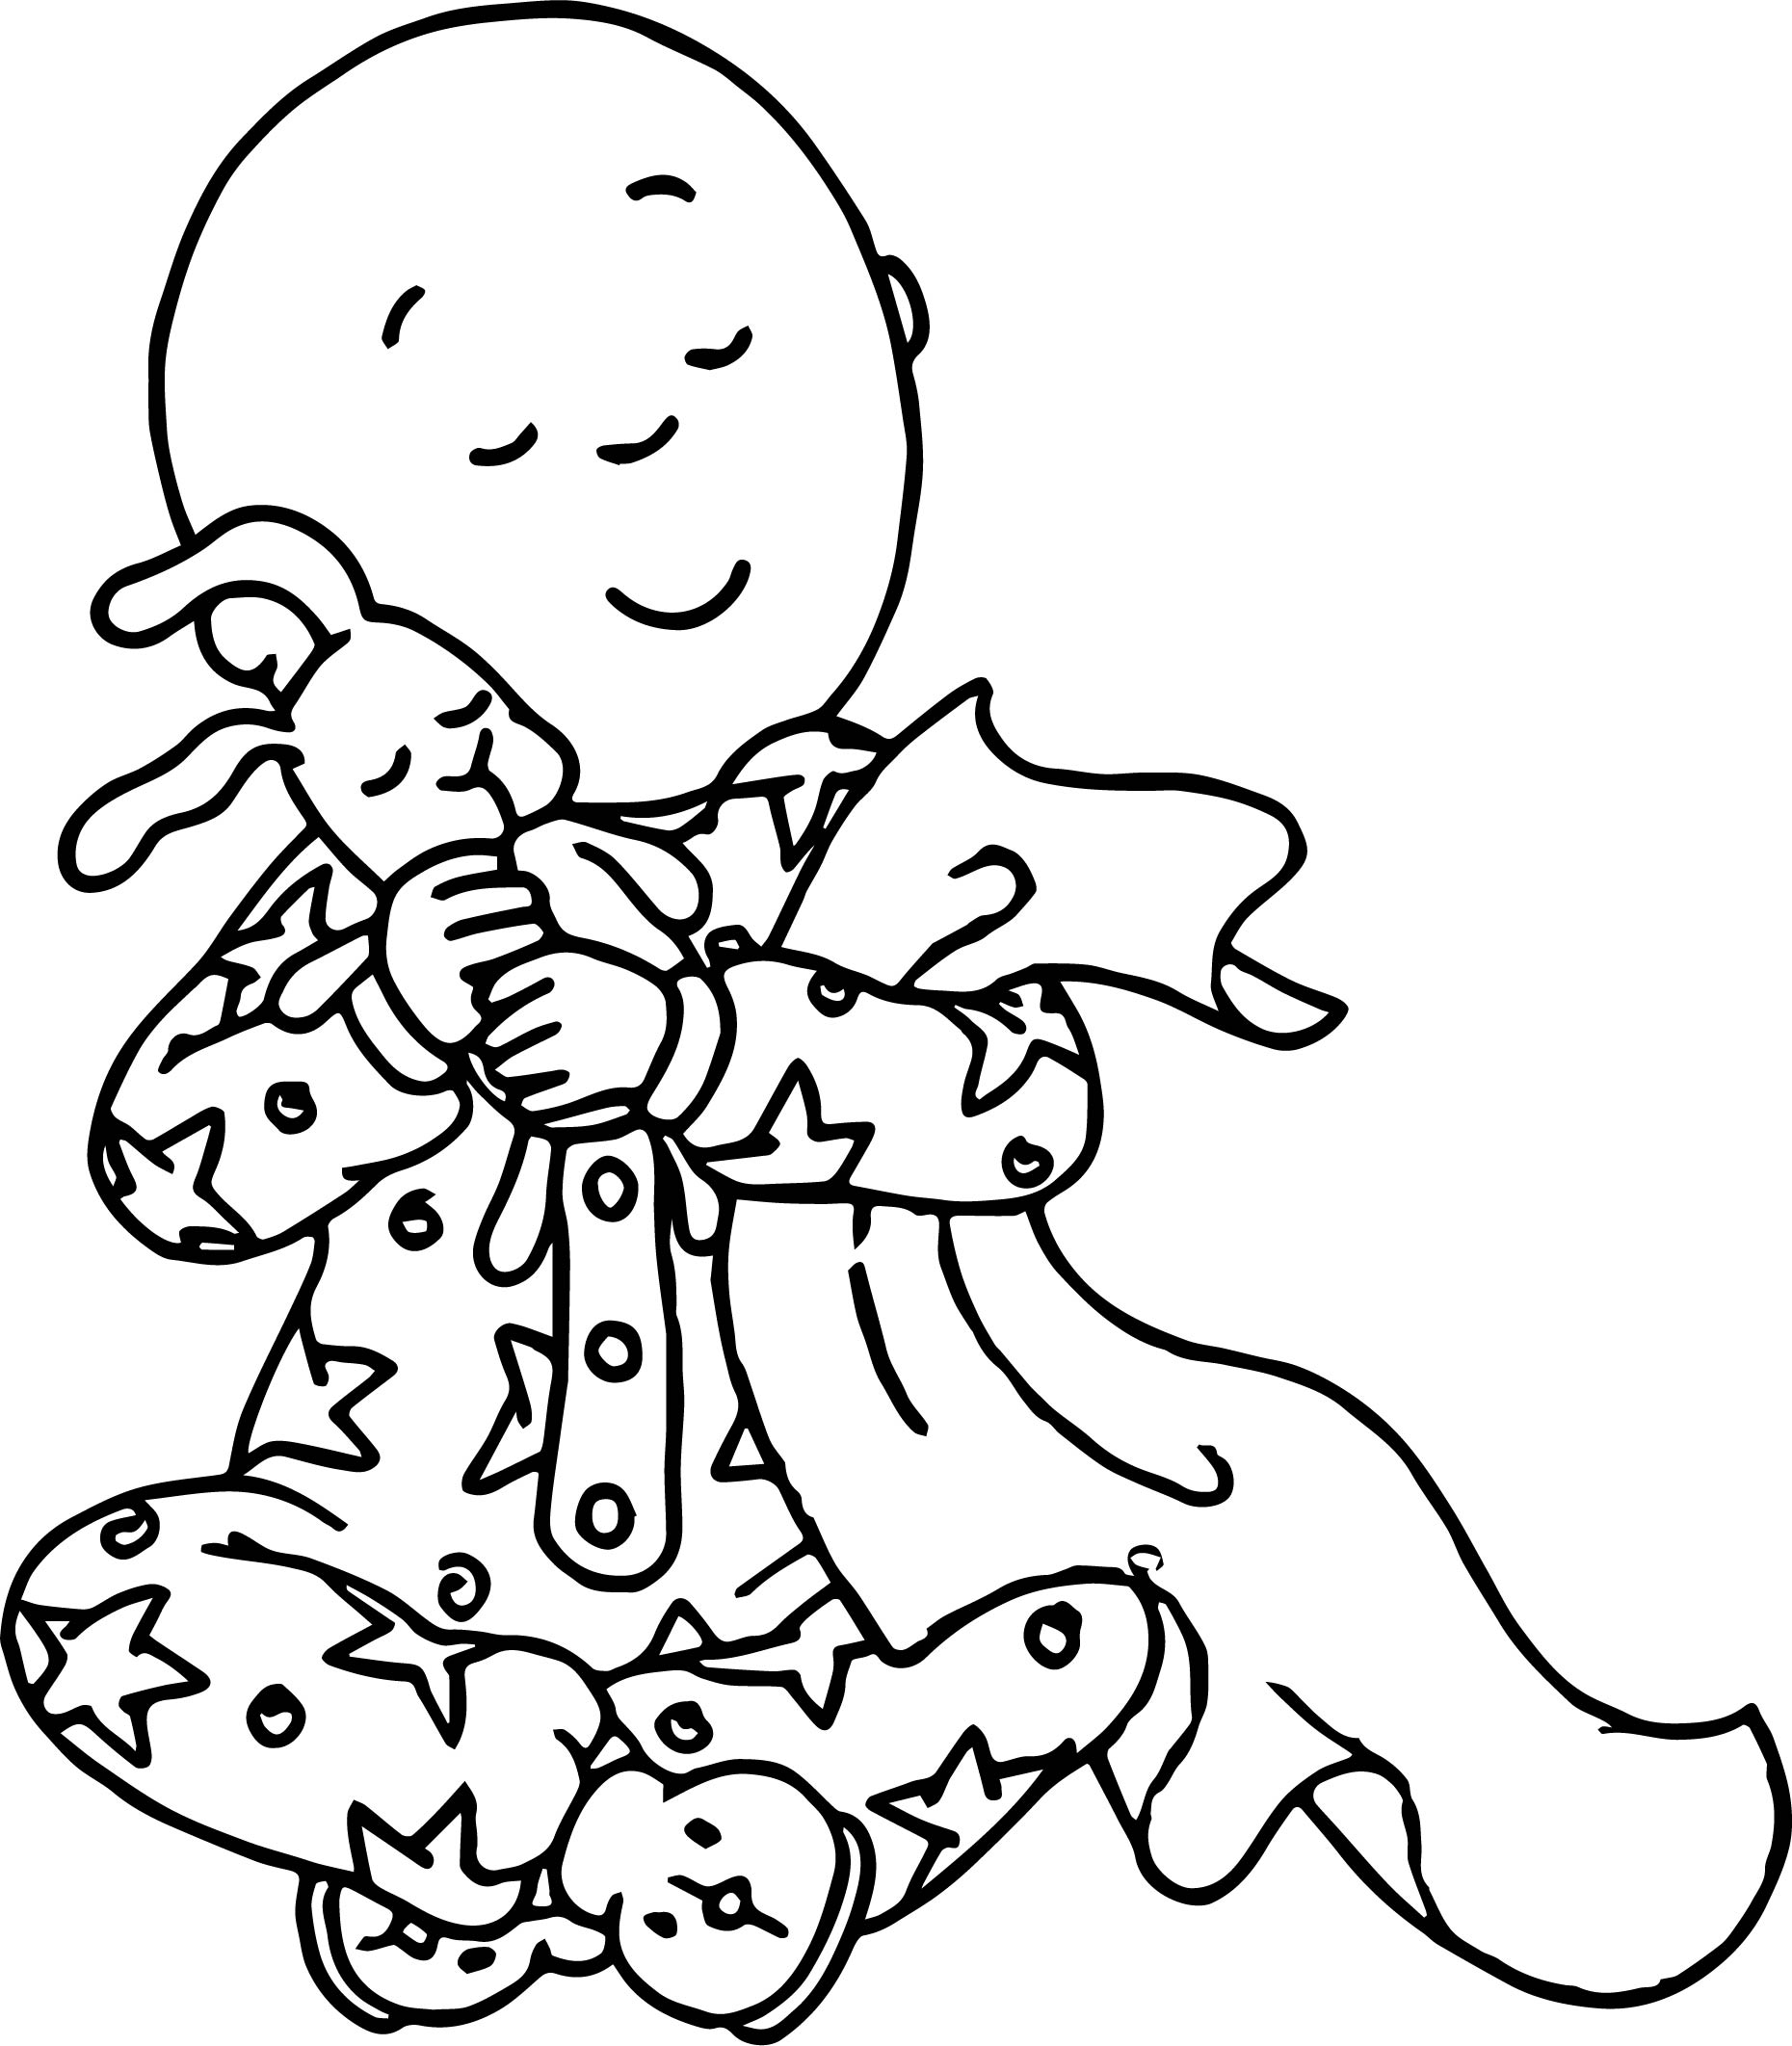 Caillou Love Toy Bunny Coloring Page